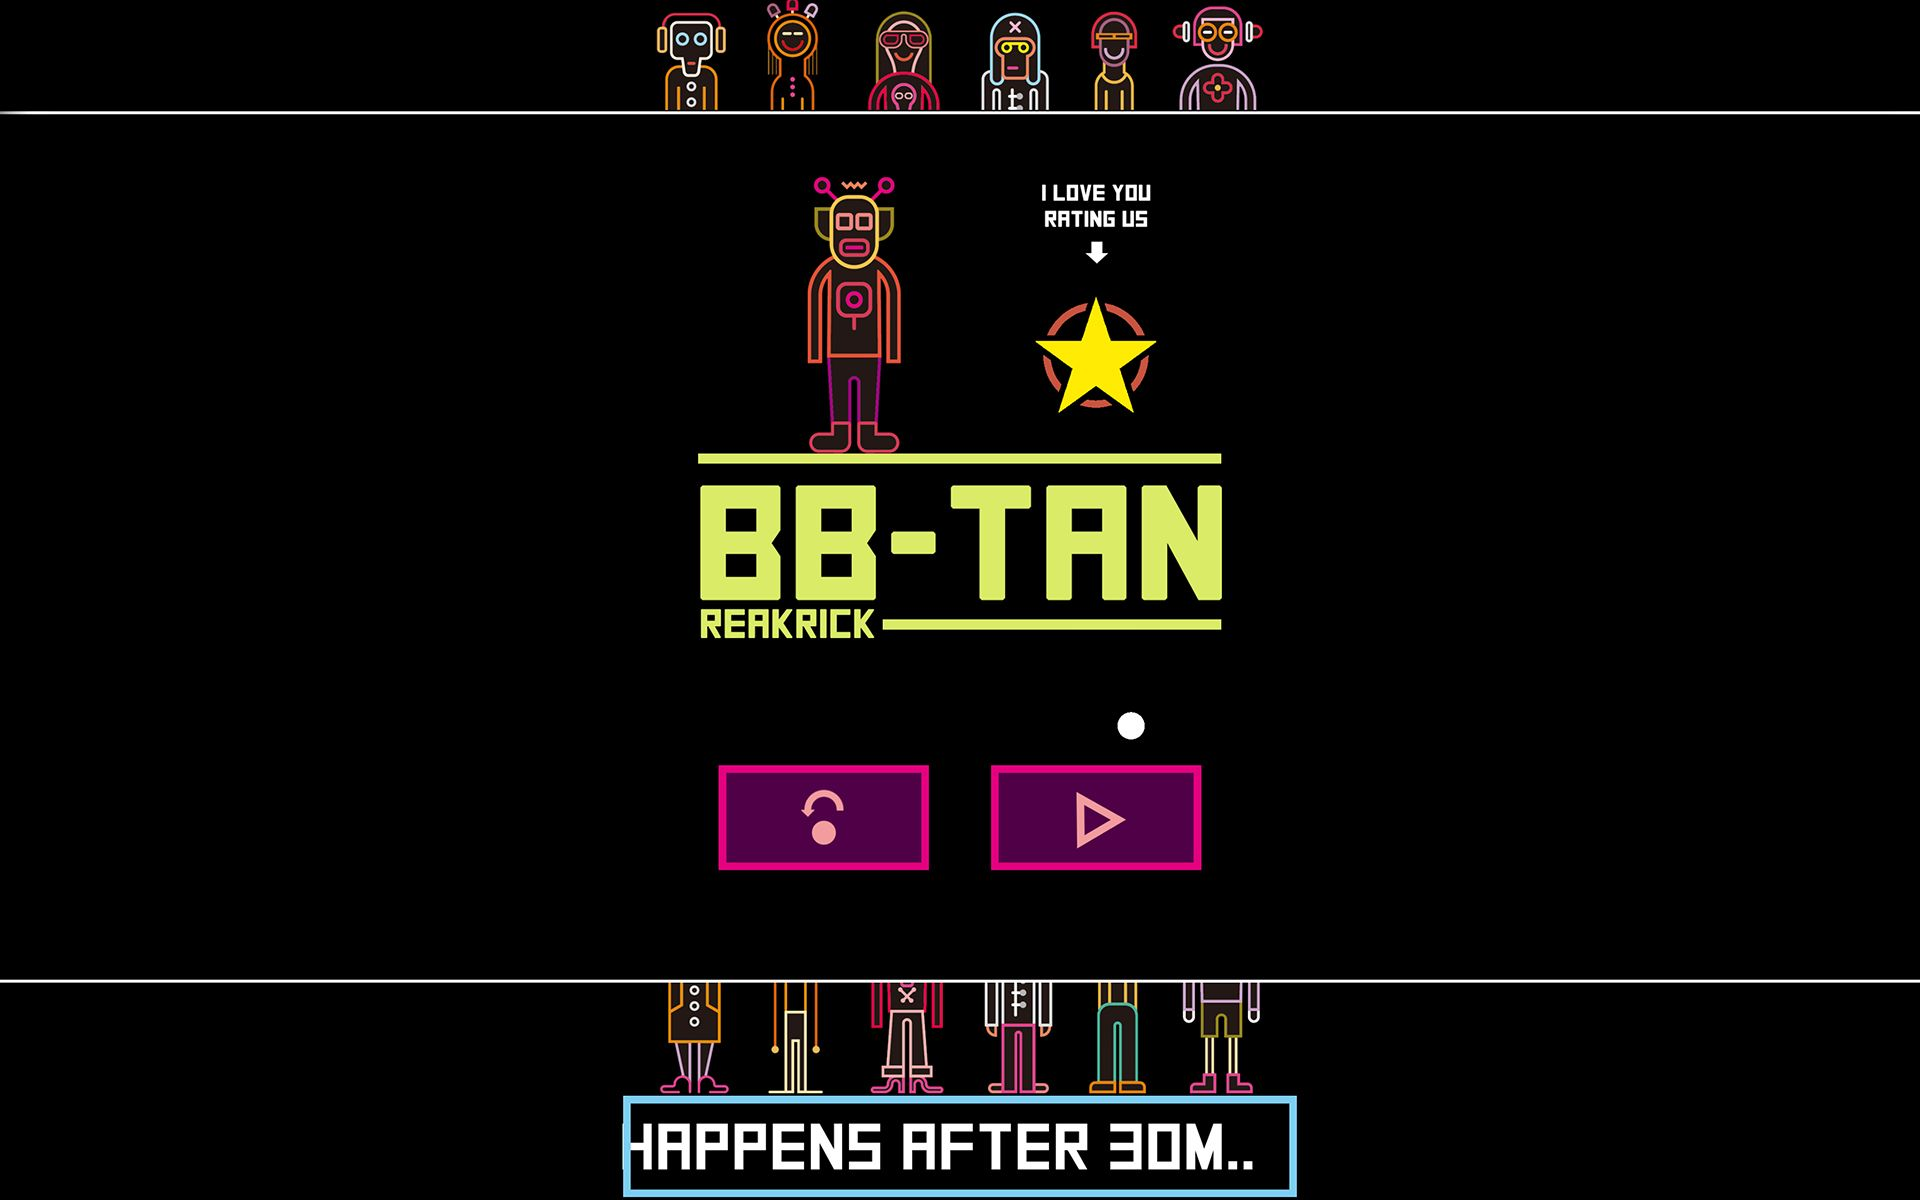 How long can you survive? #BBTAN is hitting the top charts